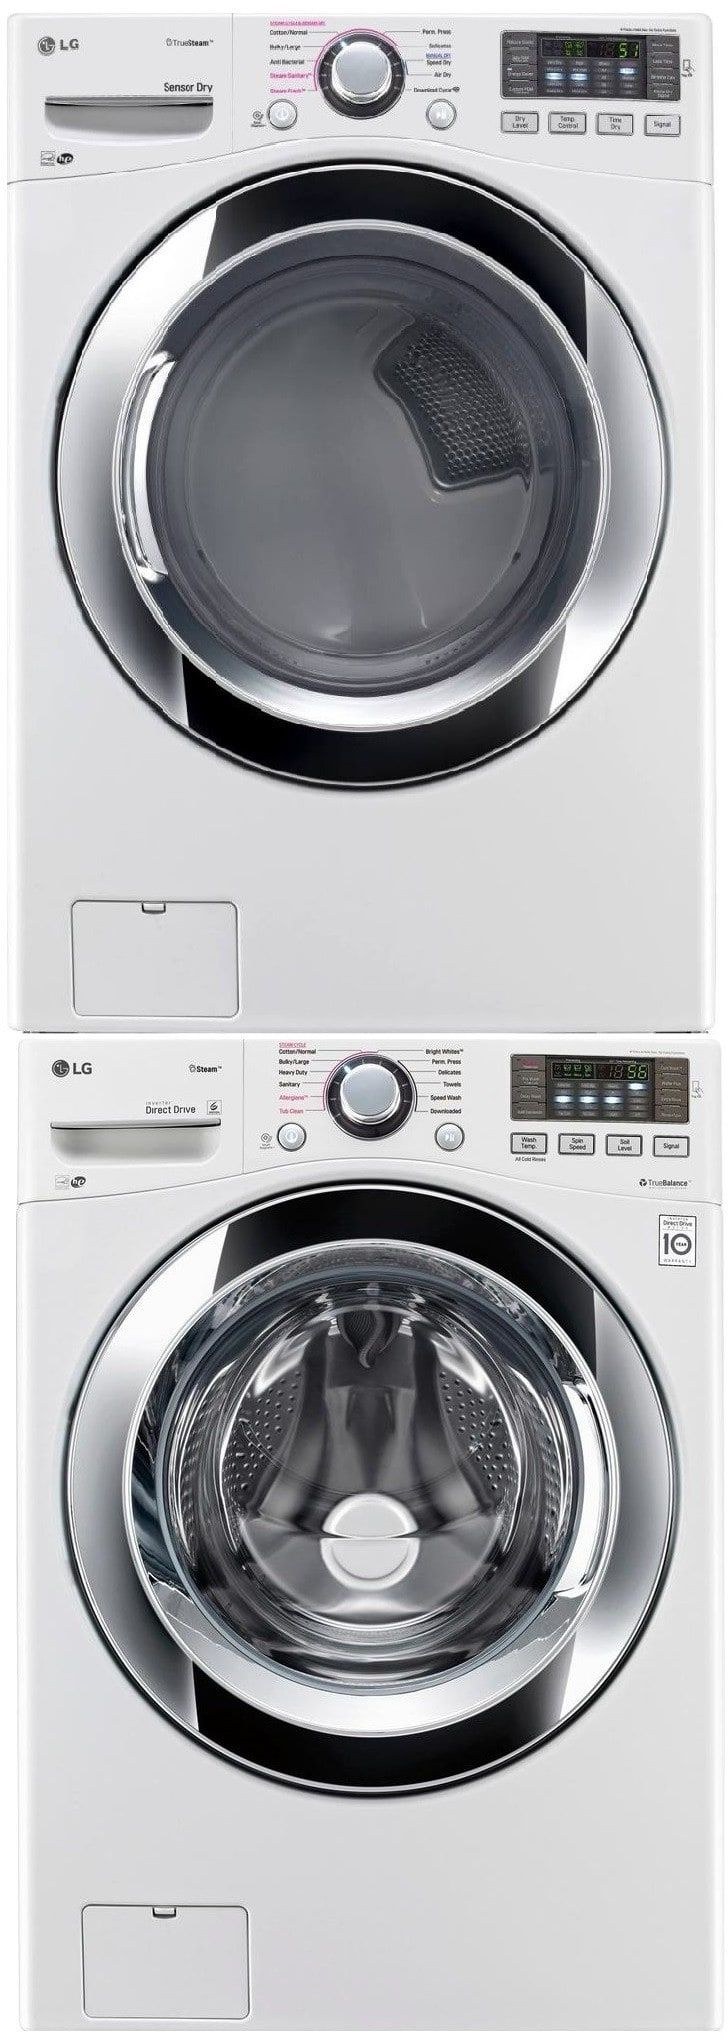 Lg lgwadrew stacked washer u dryer set with front load washer and